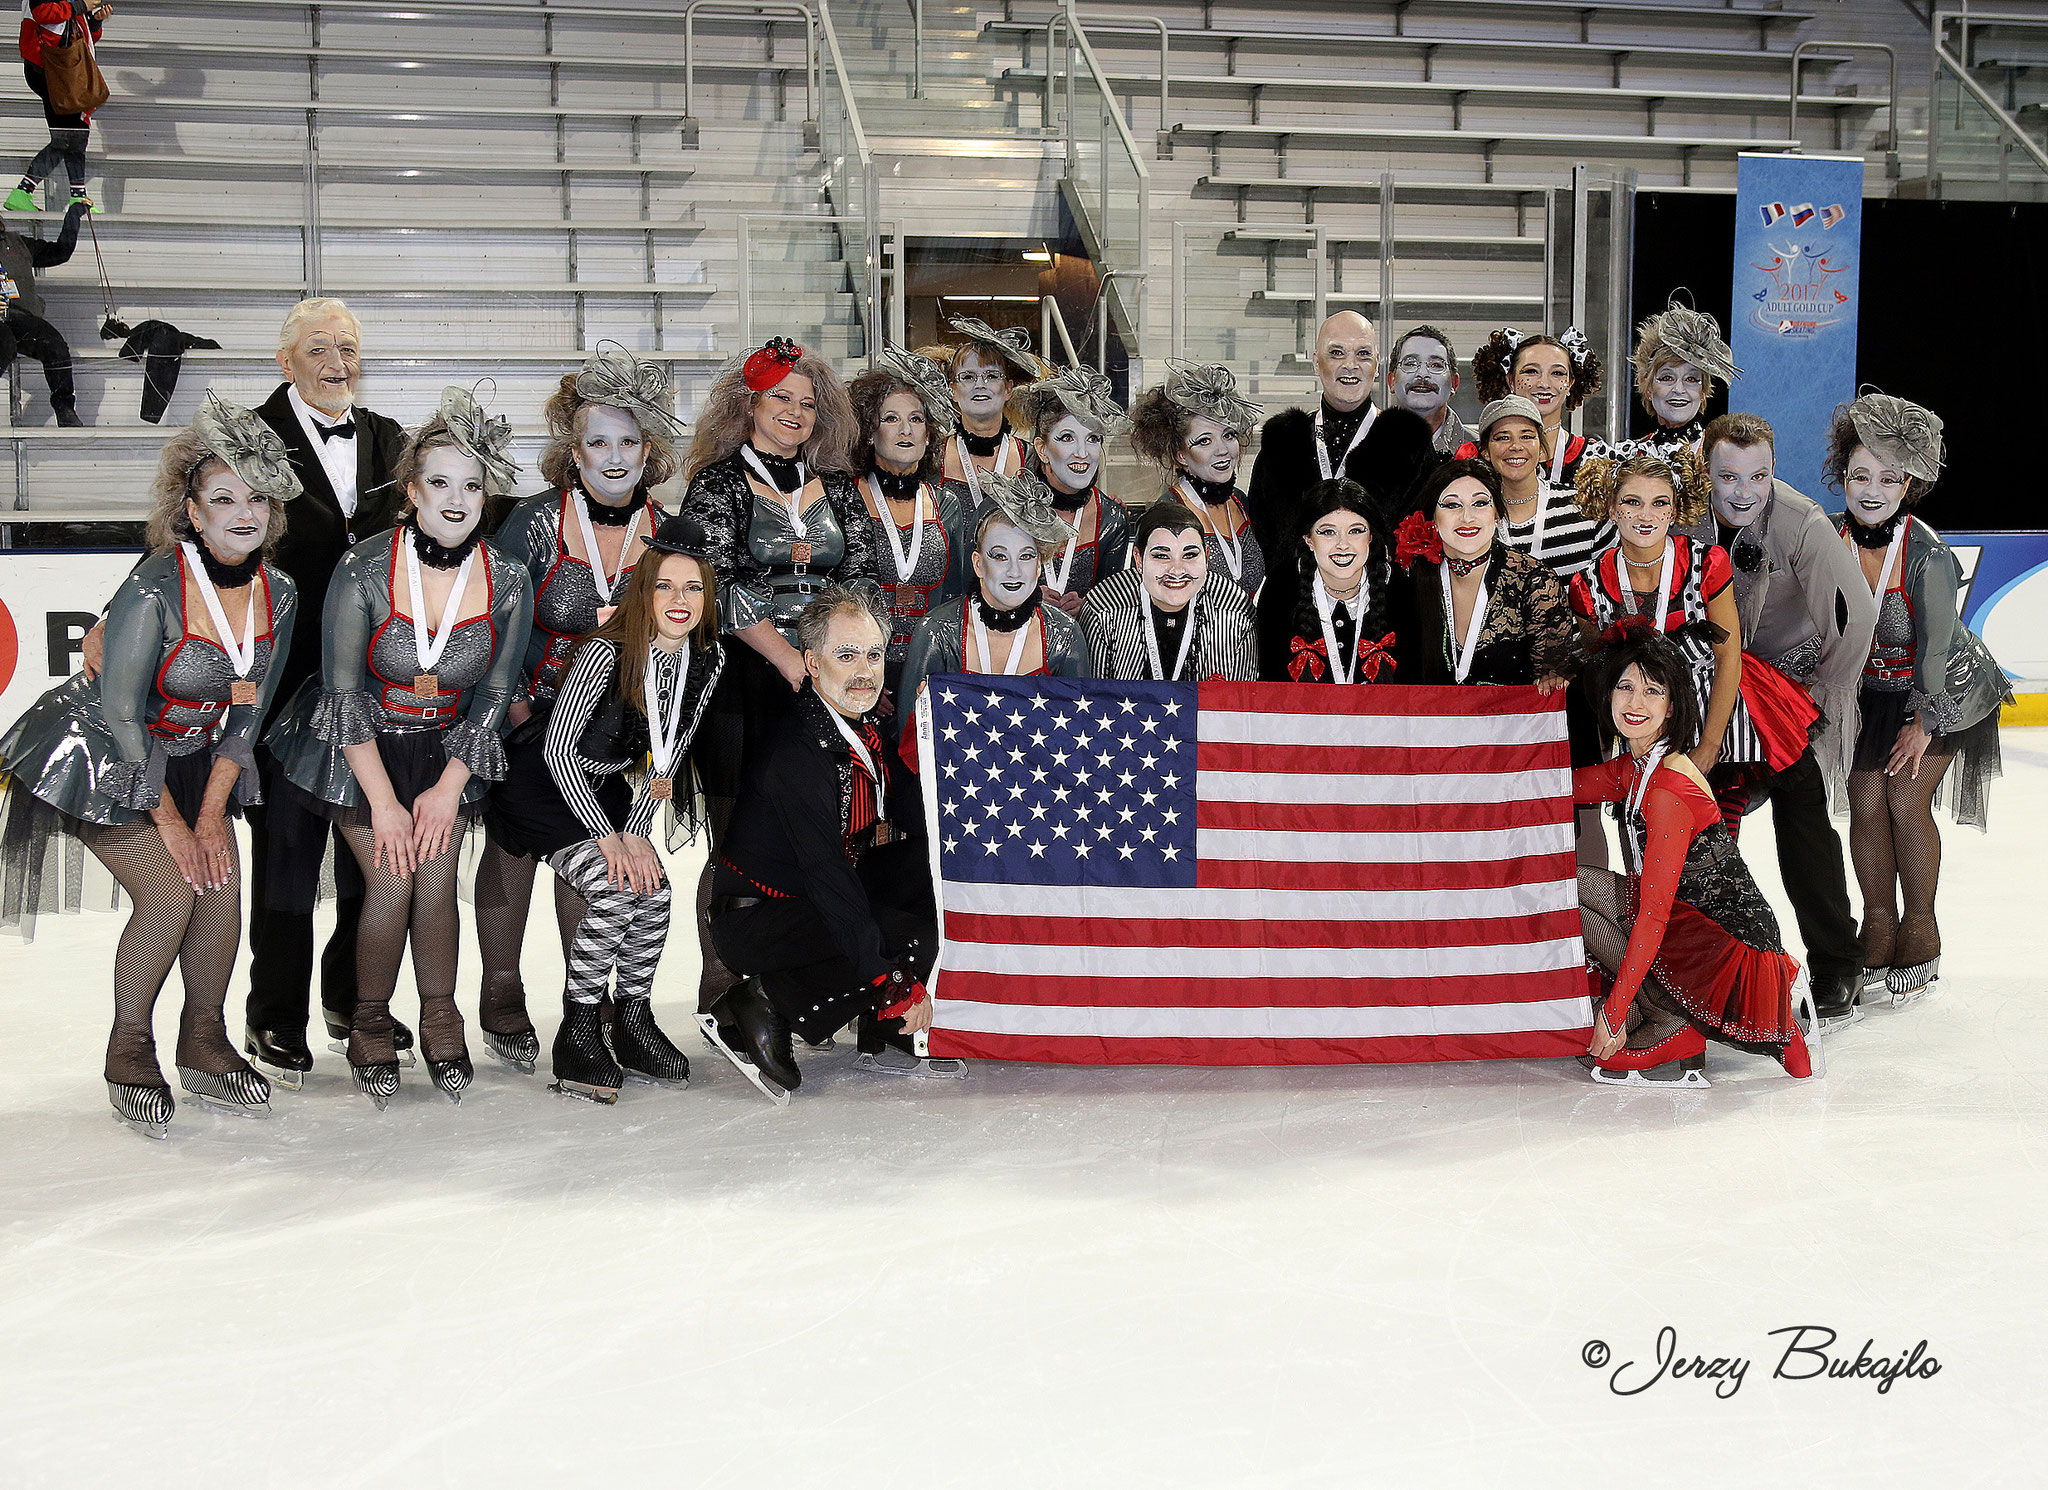 USA Harmony ice Theatre